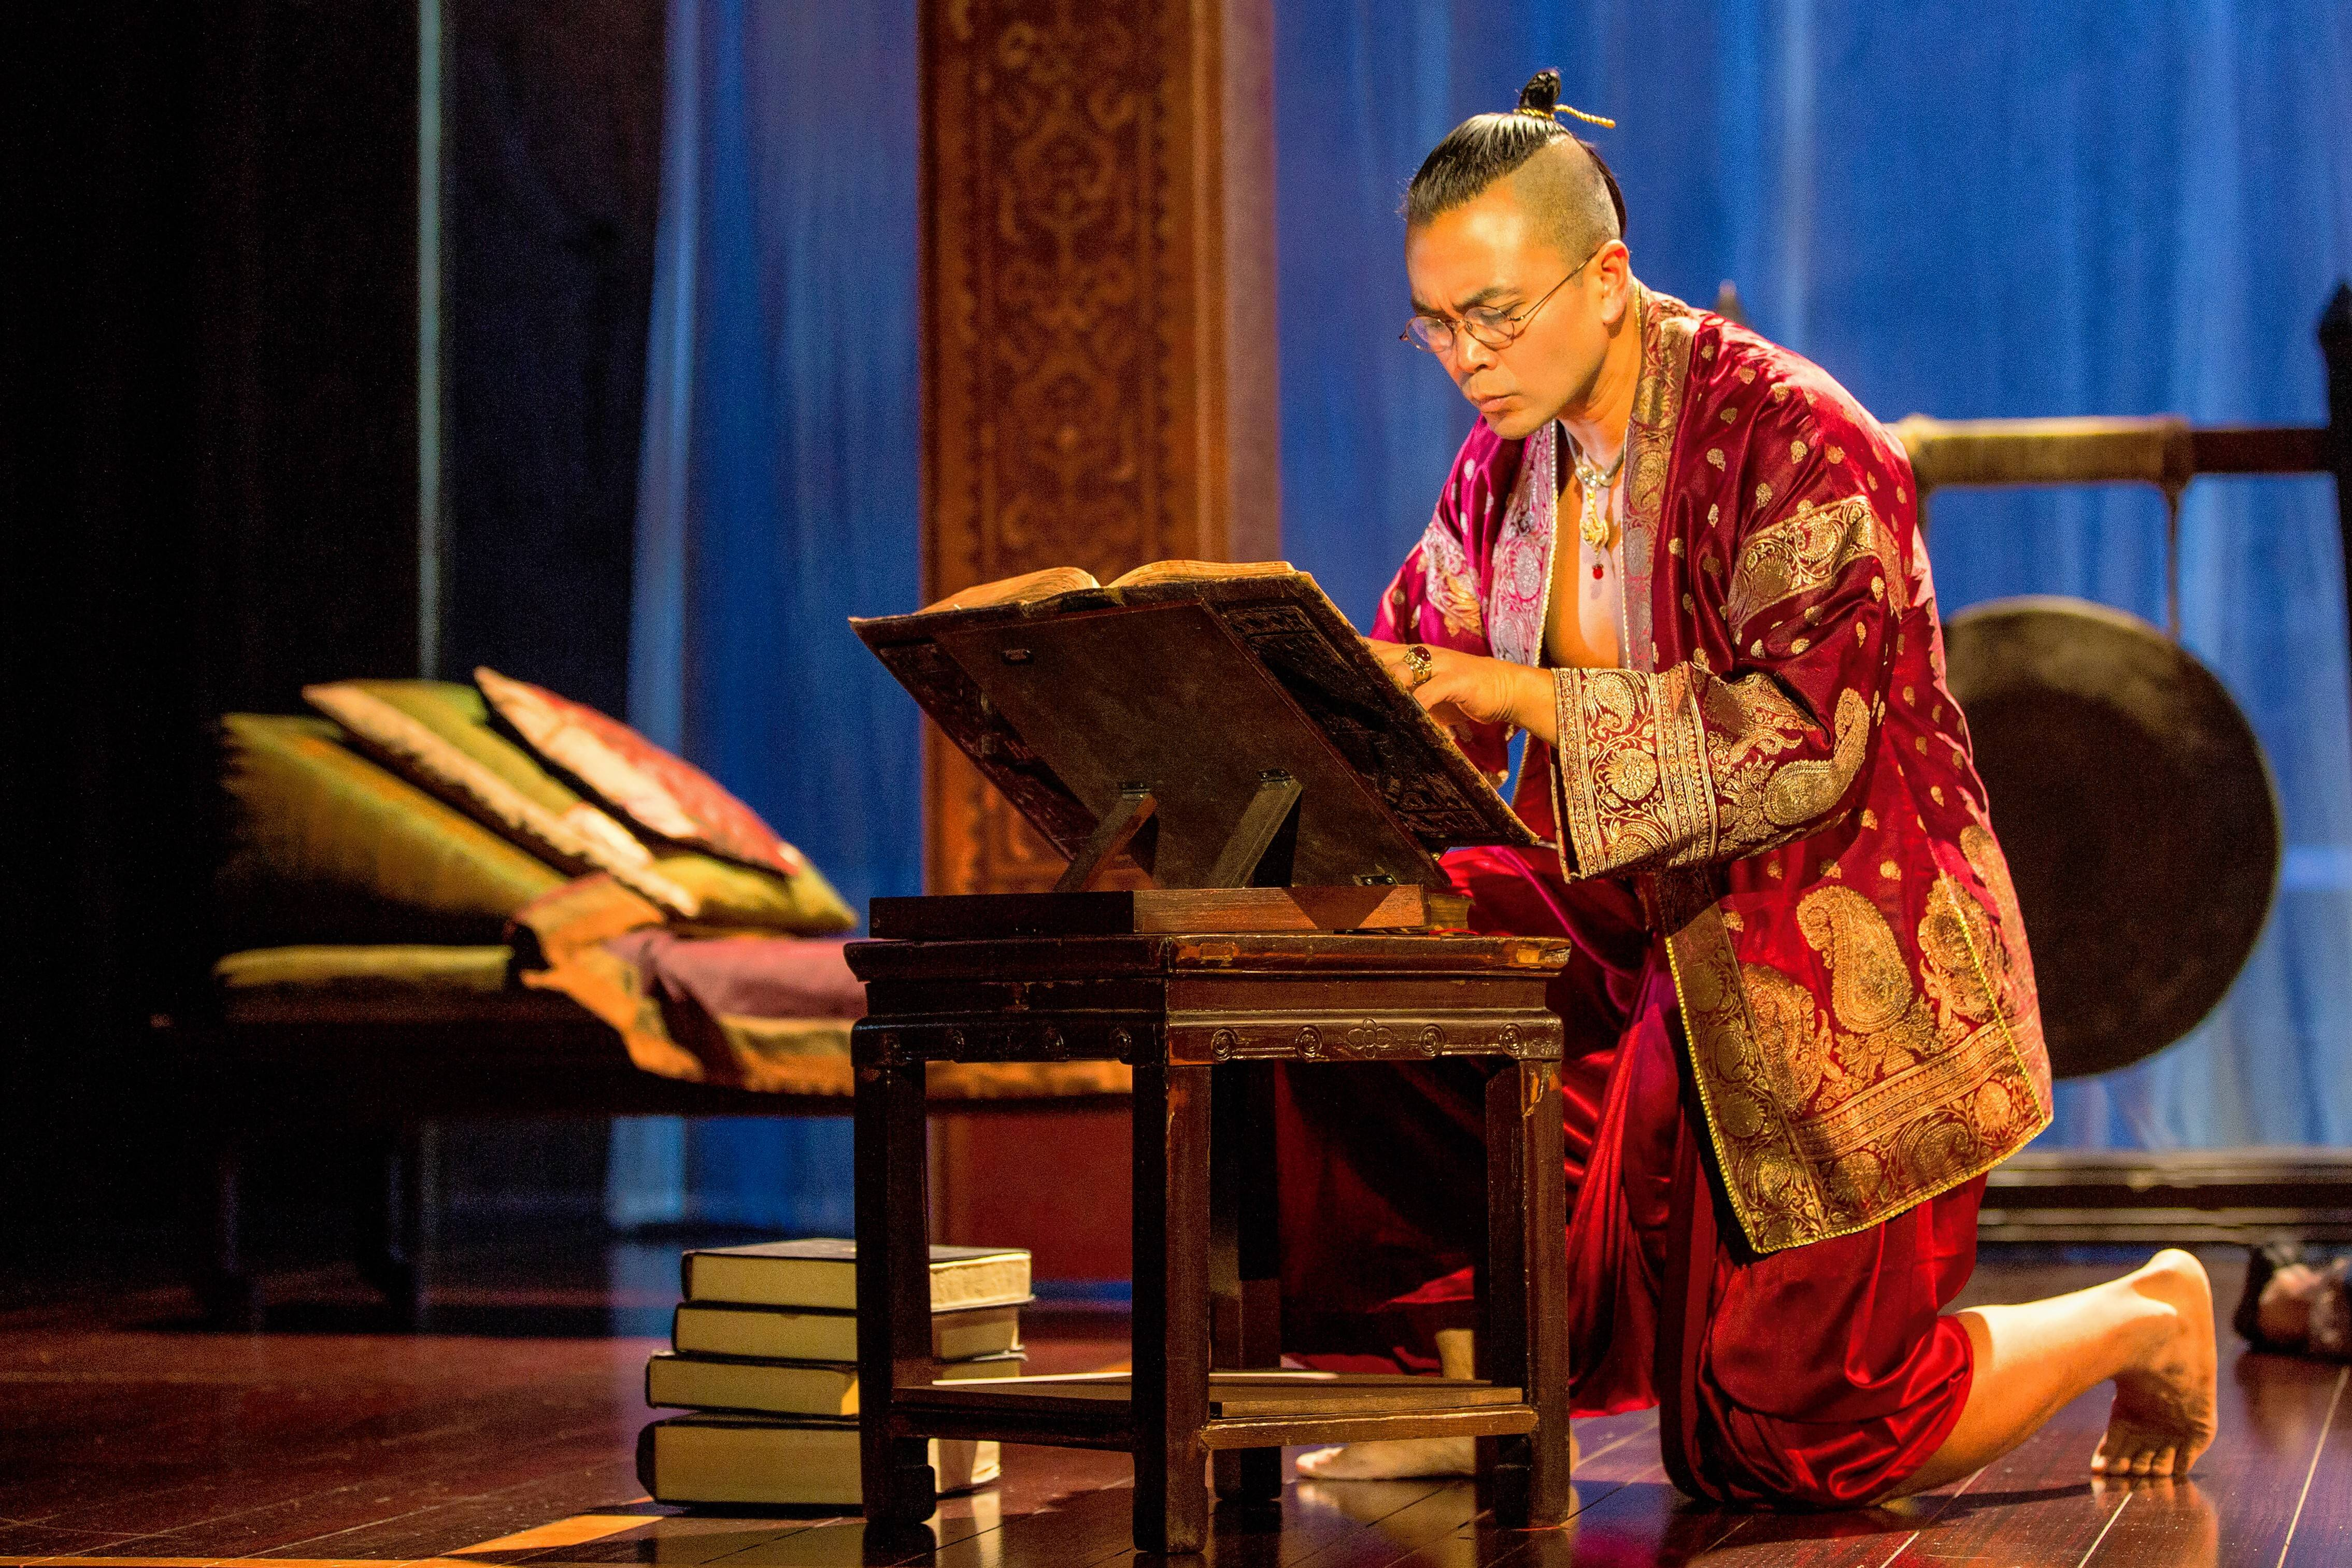 Broadway vet tours back to Chicago as 'The King and I' lead